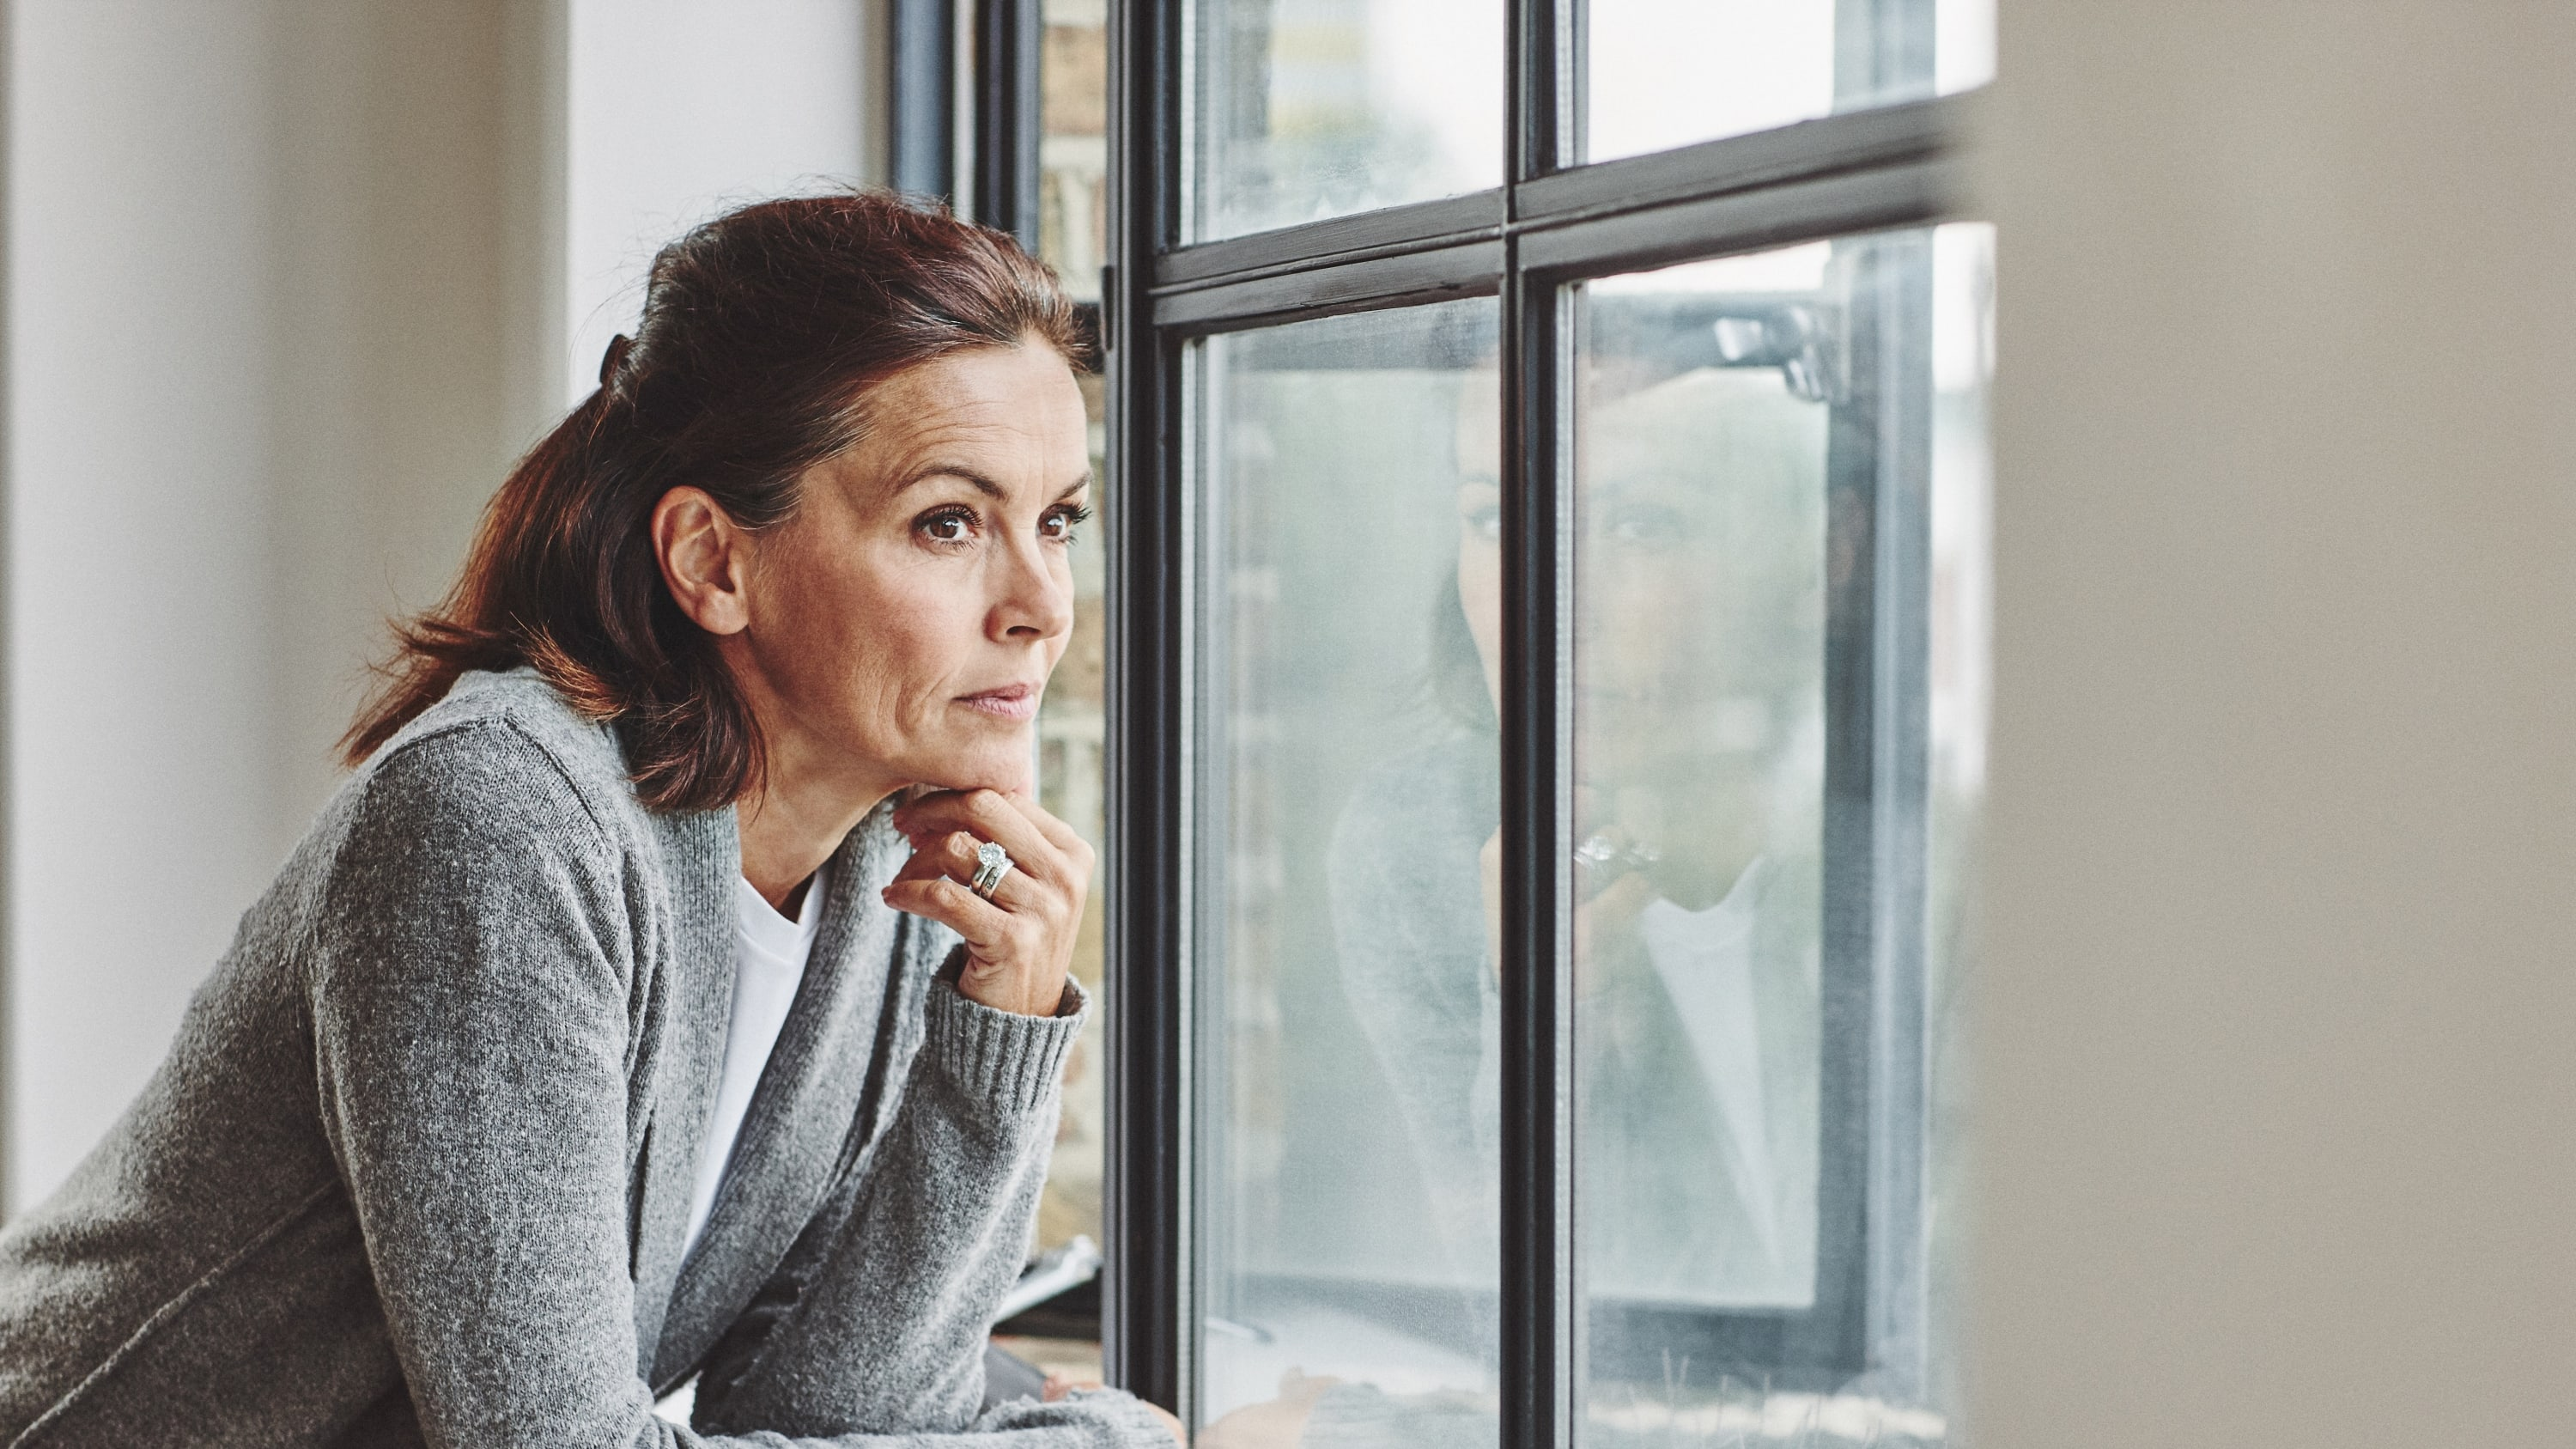 Thoughtful mature woman standing by the window, thinking about transvaginal mesh for pelvic organ prolapse